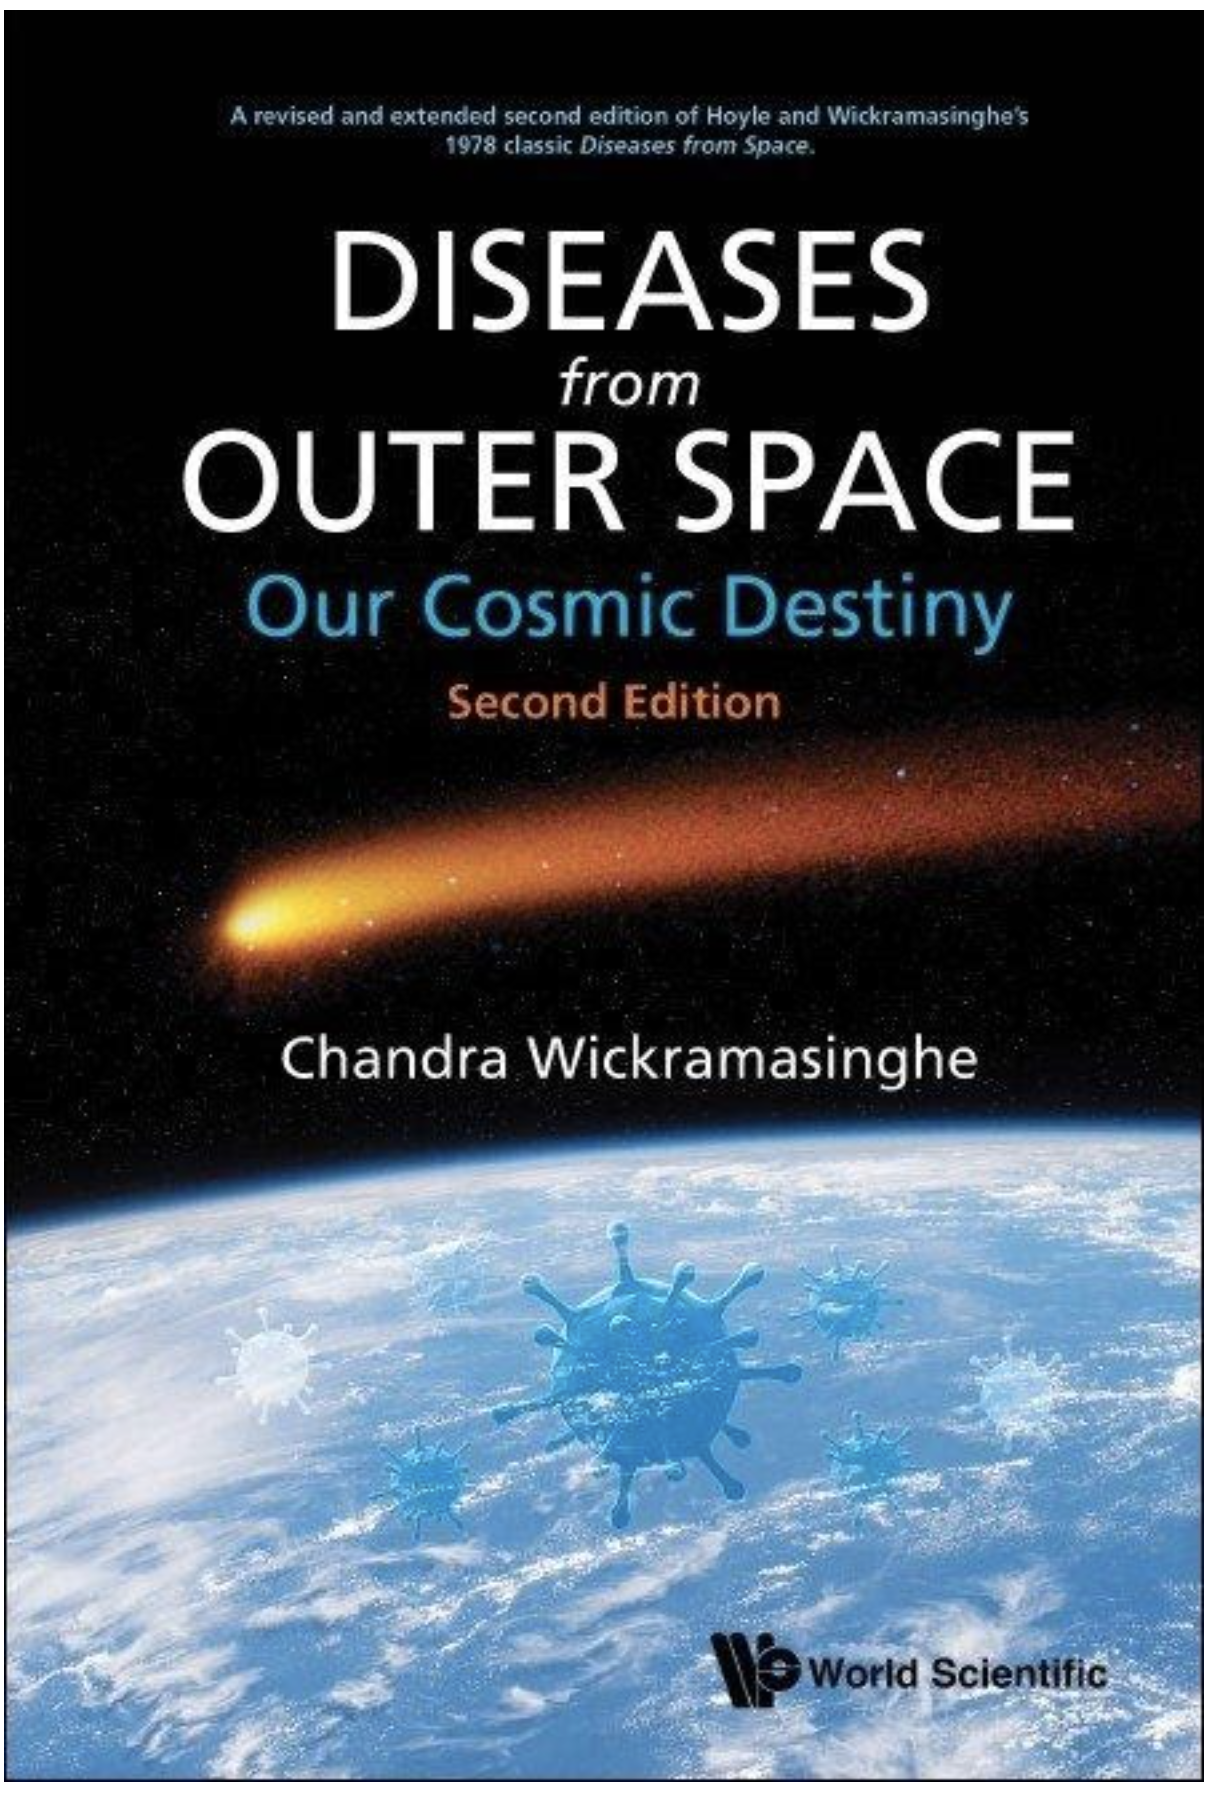 DISEASES FROM OUTER SPACE